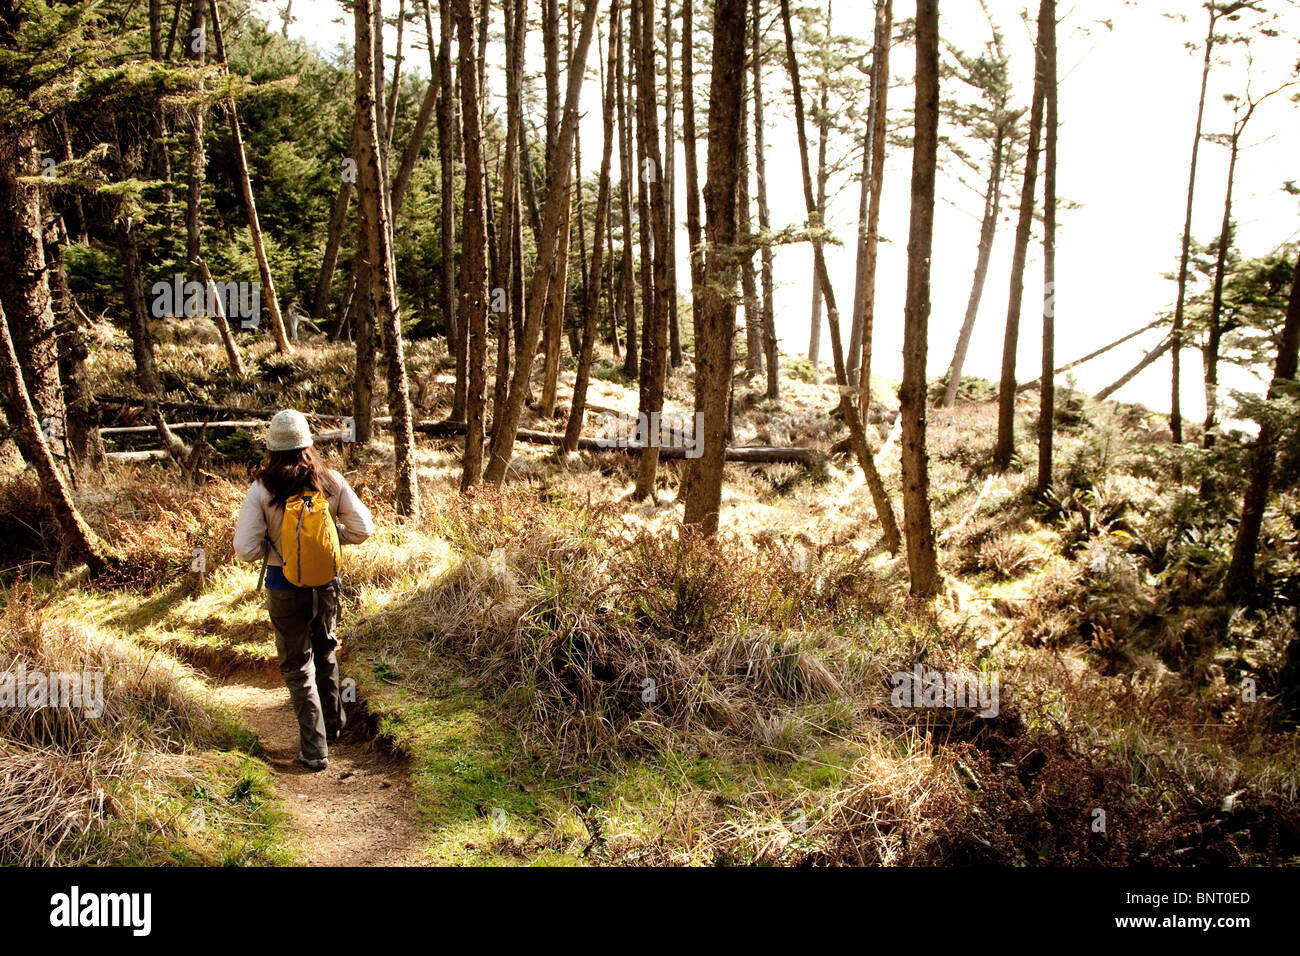 A woman hiking a secluded path through the trees. - Stock Image